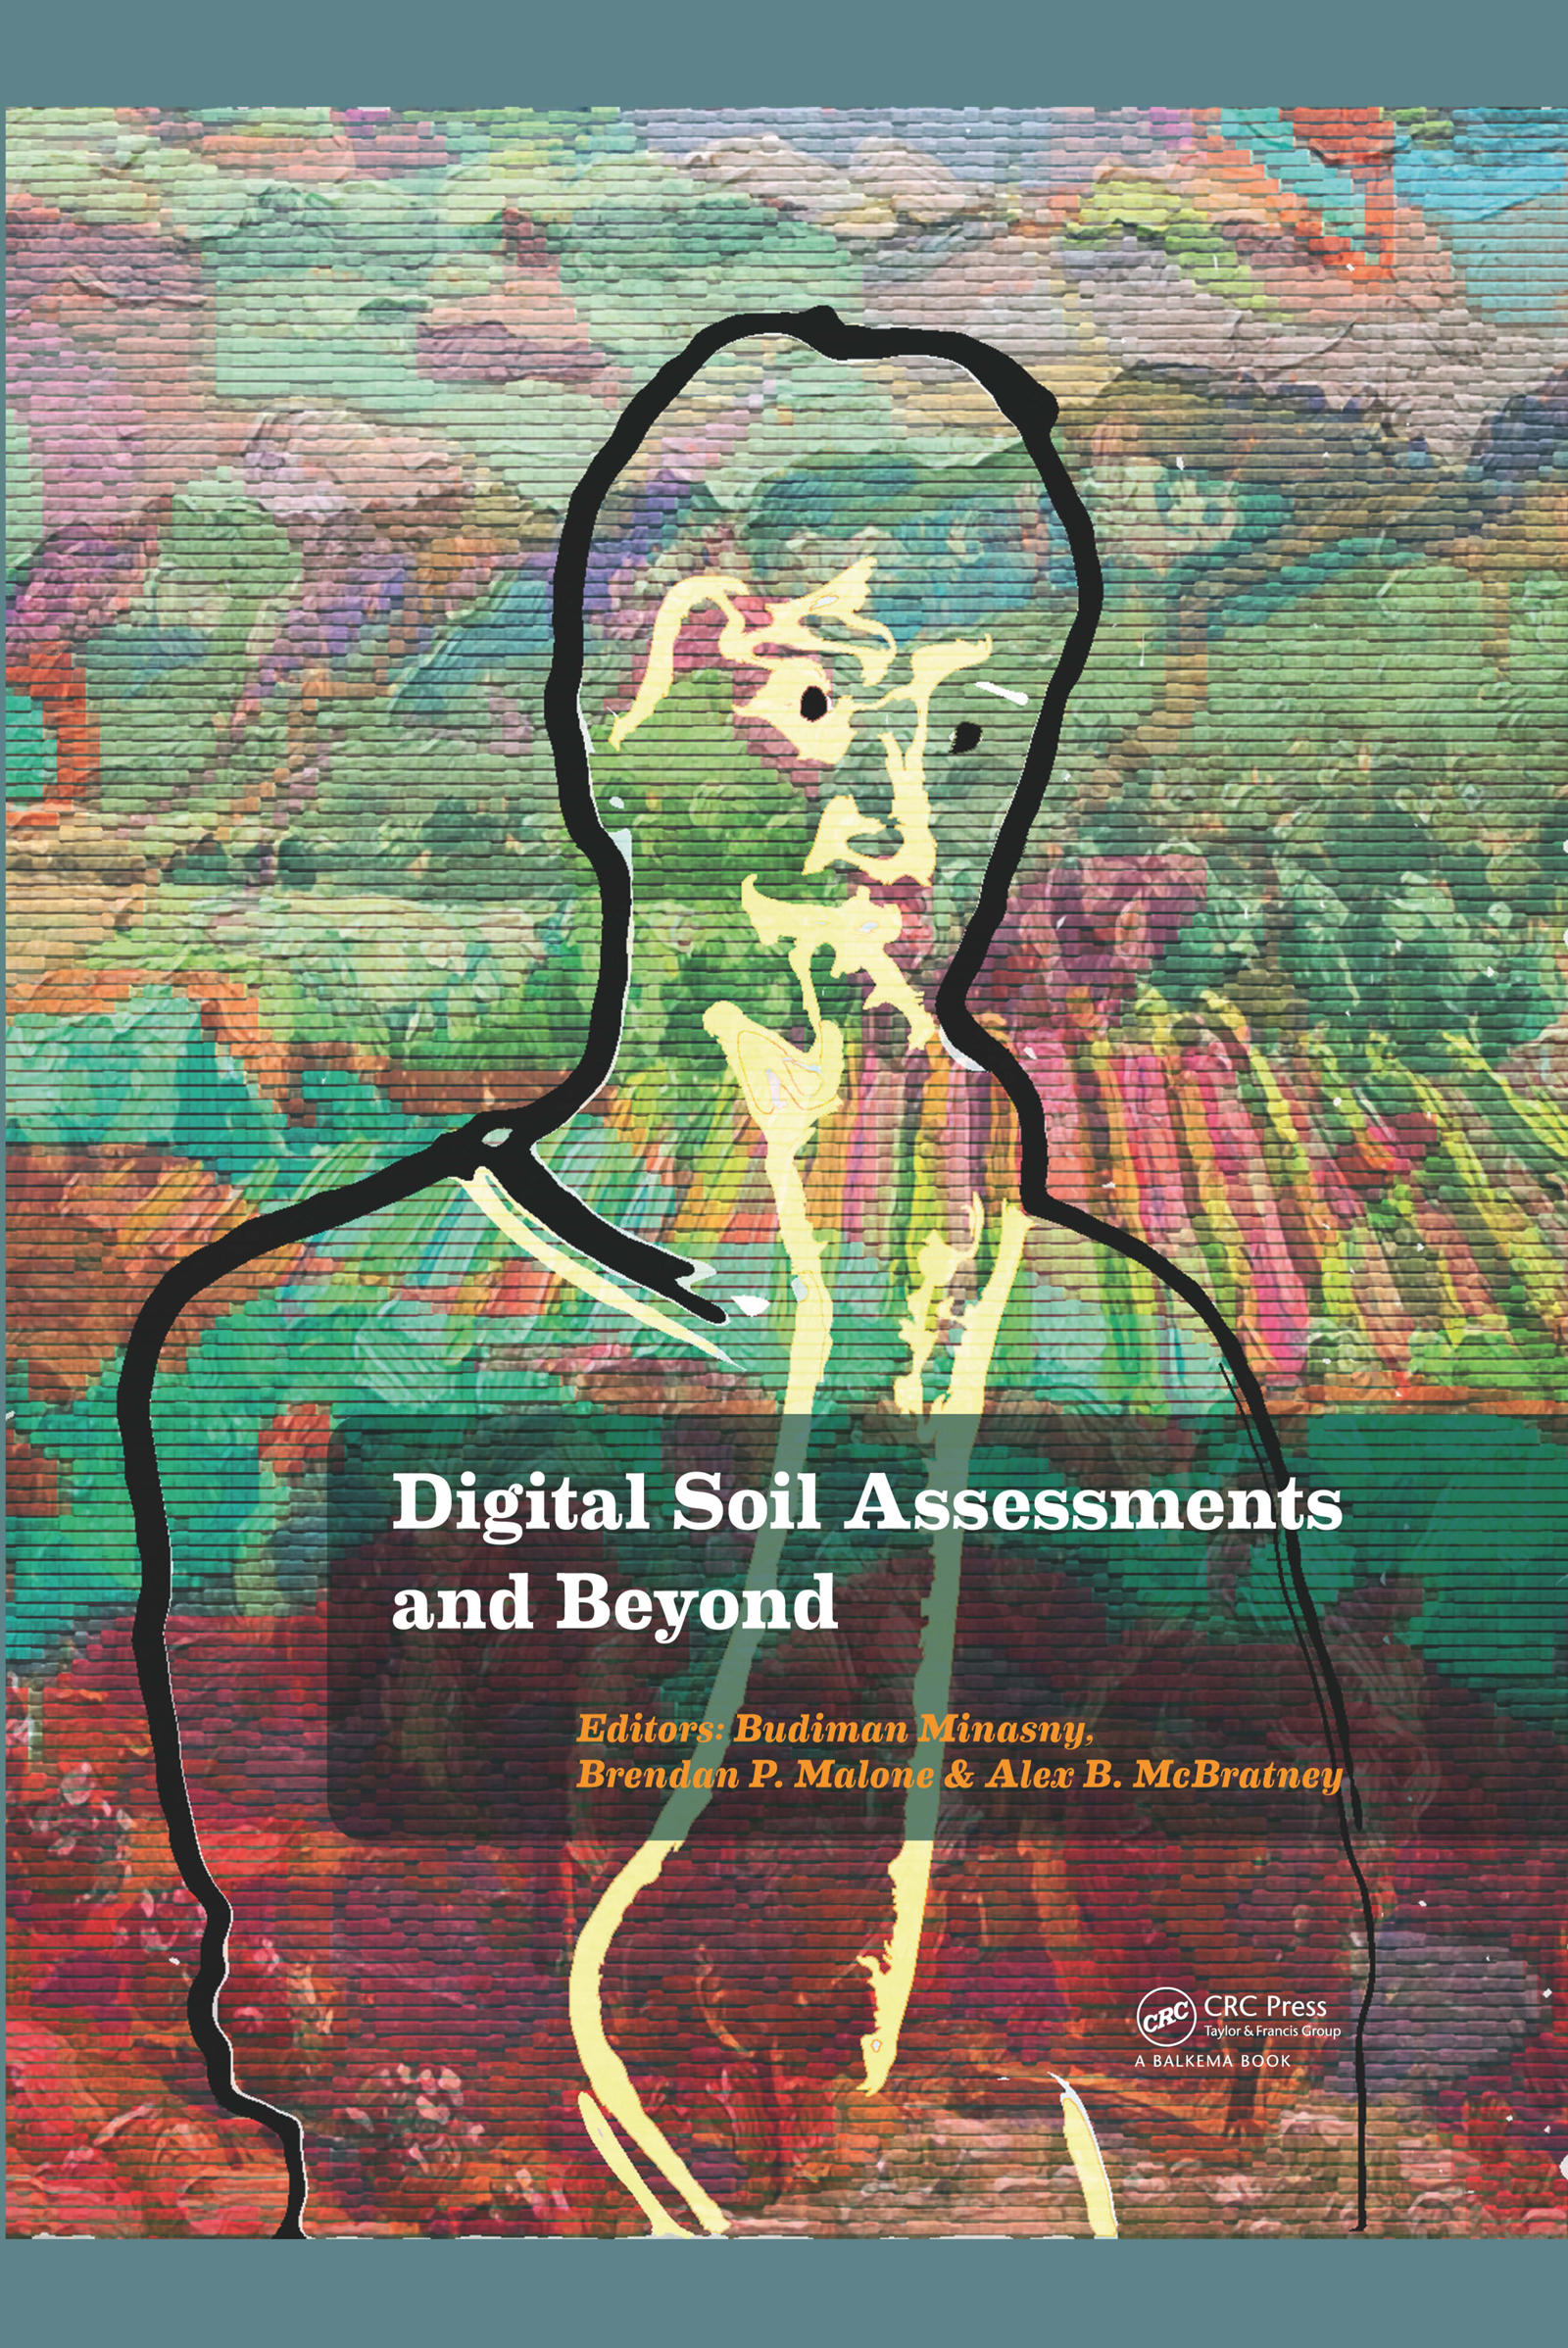 Digital Soil Assessments and Beyond: Proceedings of the 5th Global Workshop on Digital Soil Mapping 2012, Sydney, Australia book cover